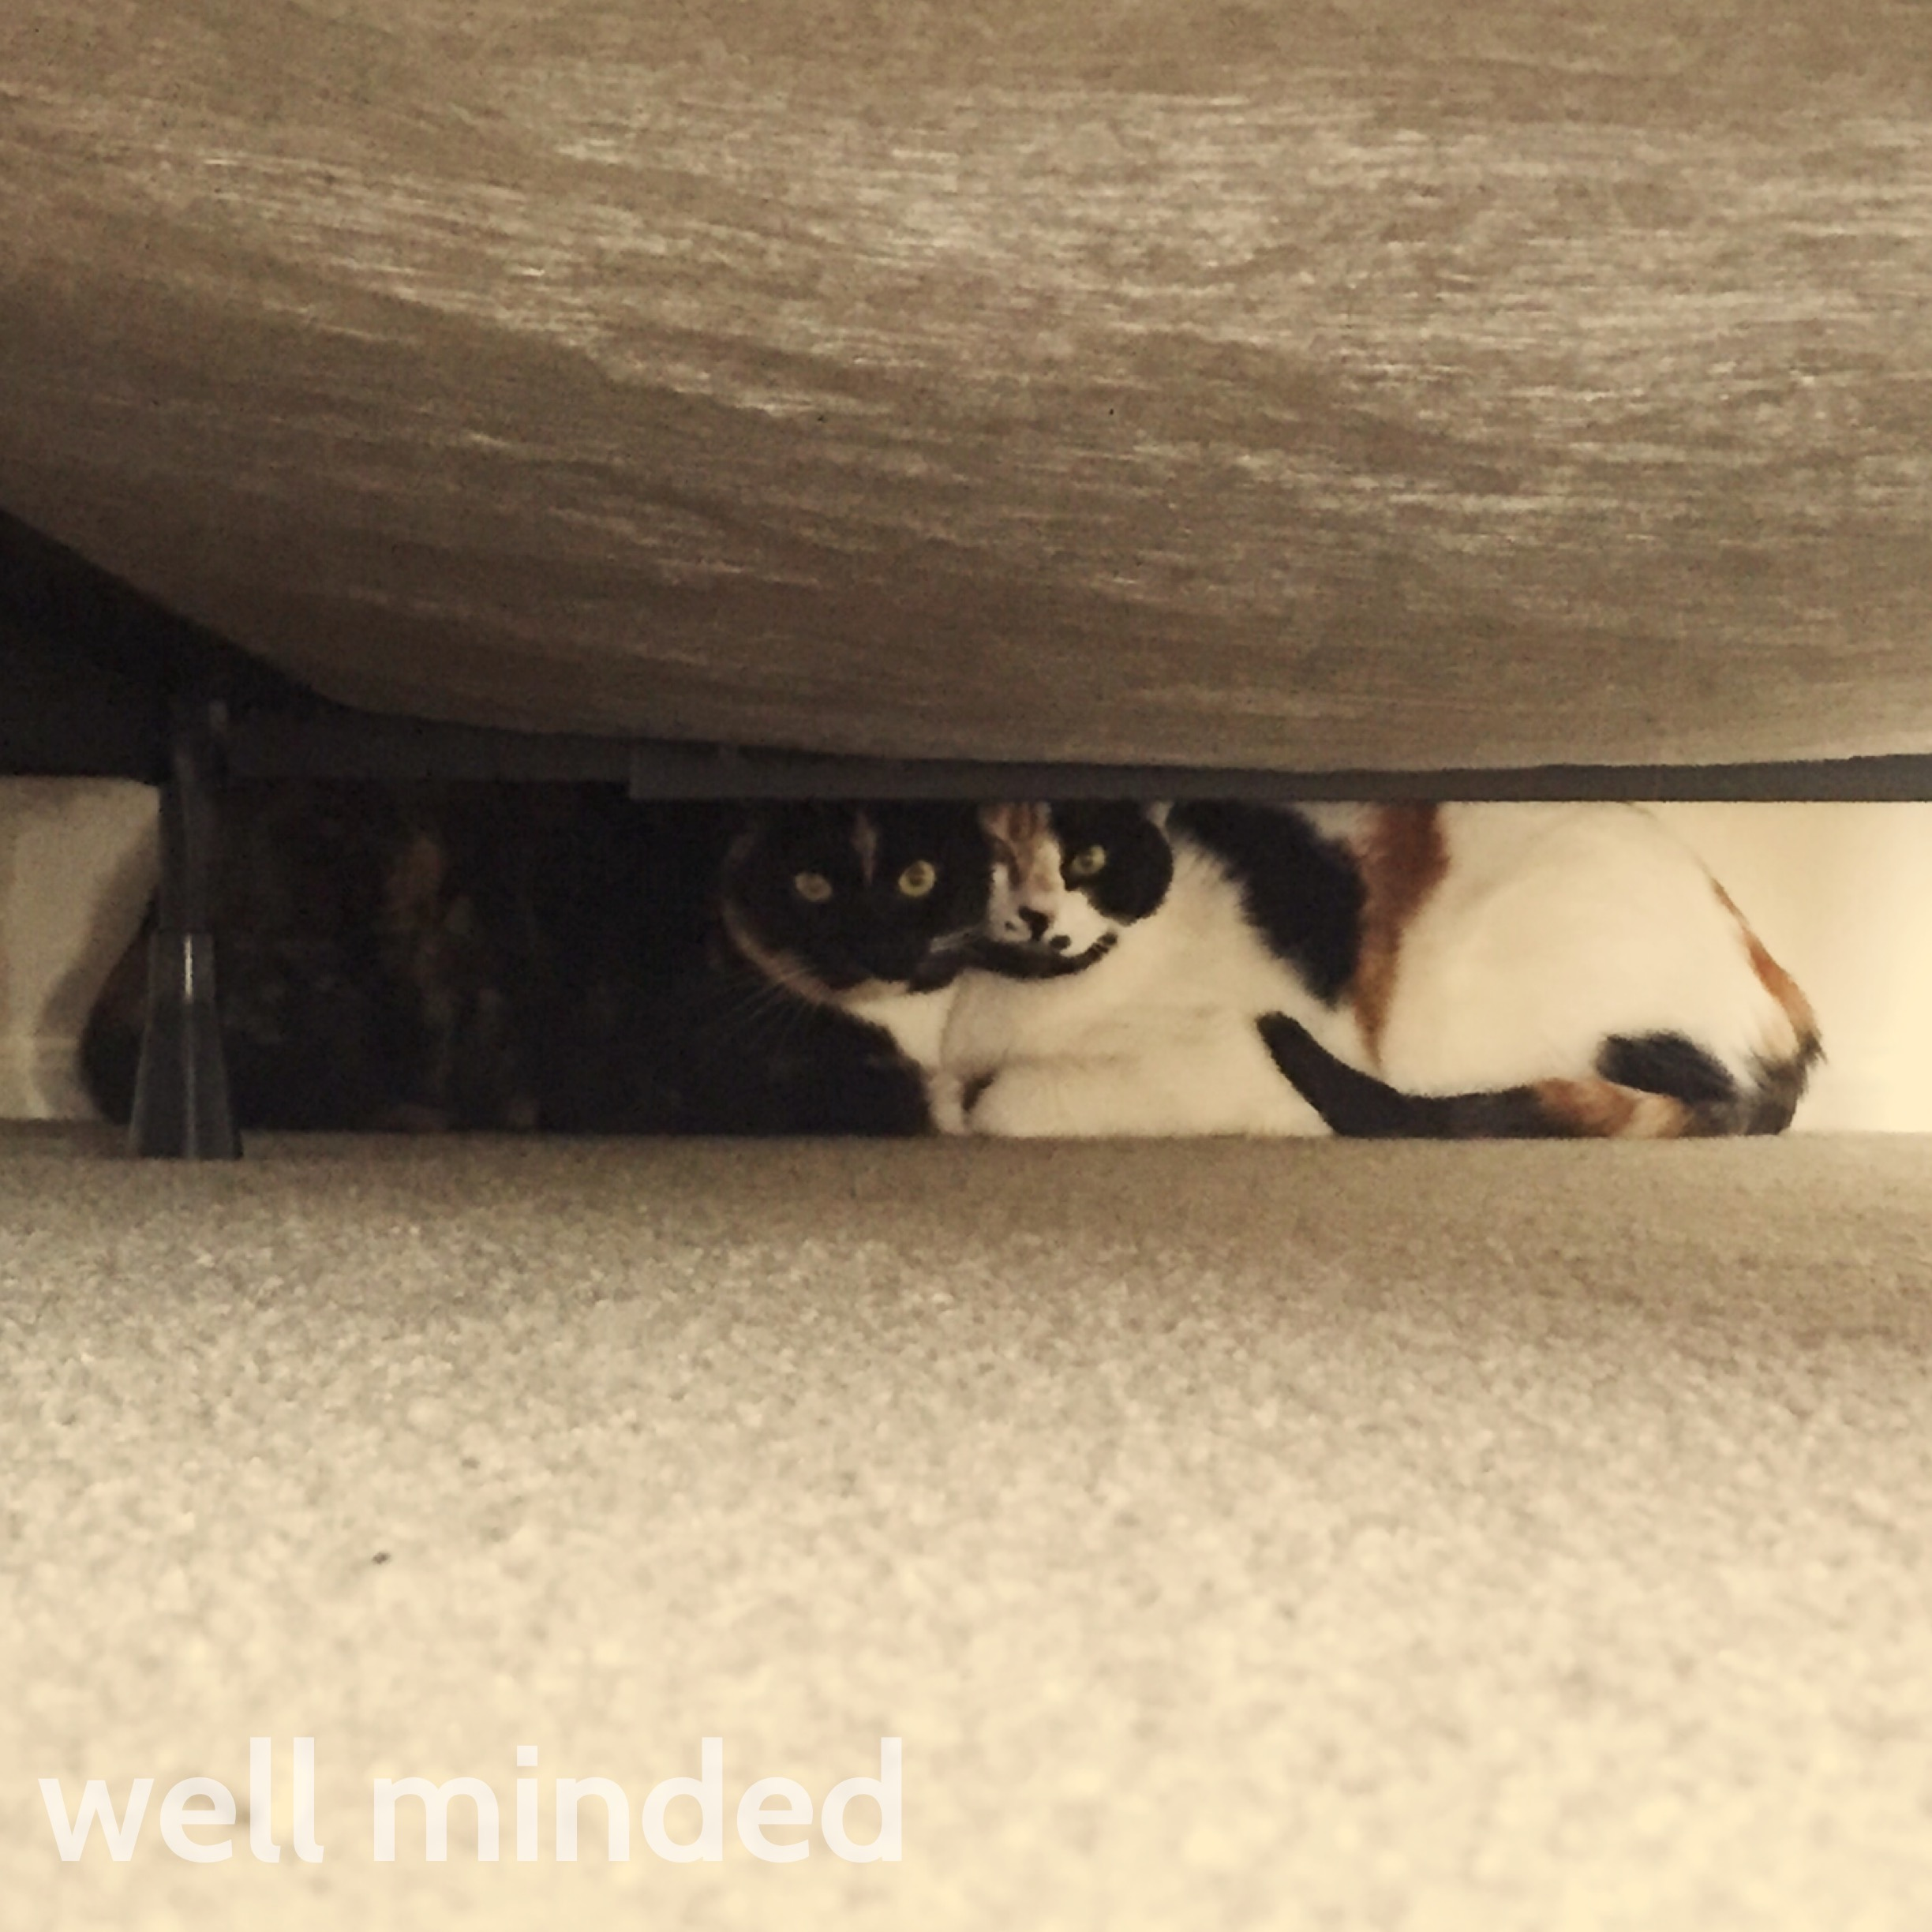 Cats who like to hide may sneak into an off-limits room if the door is opened.